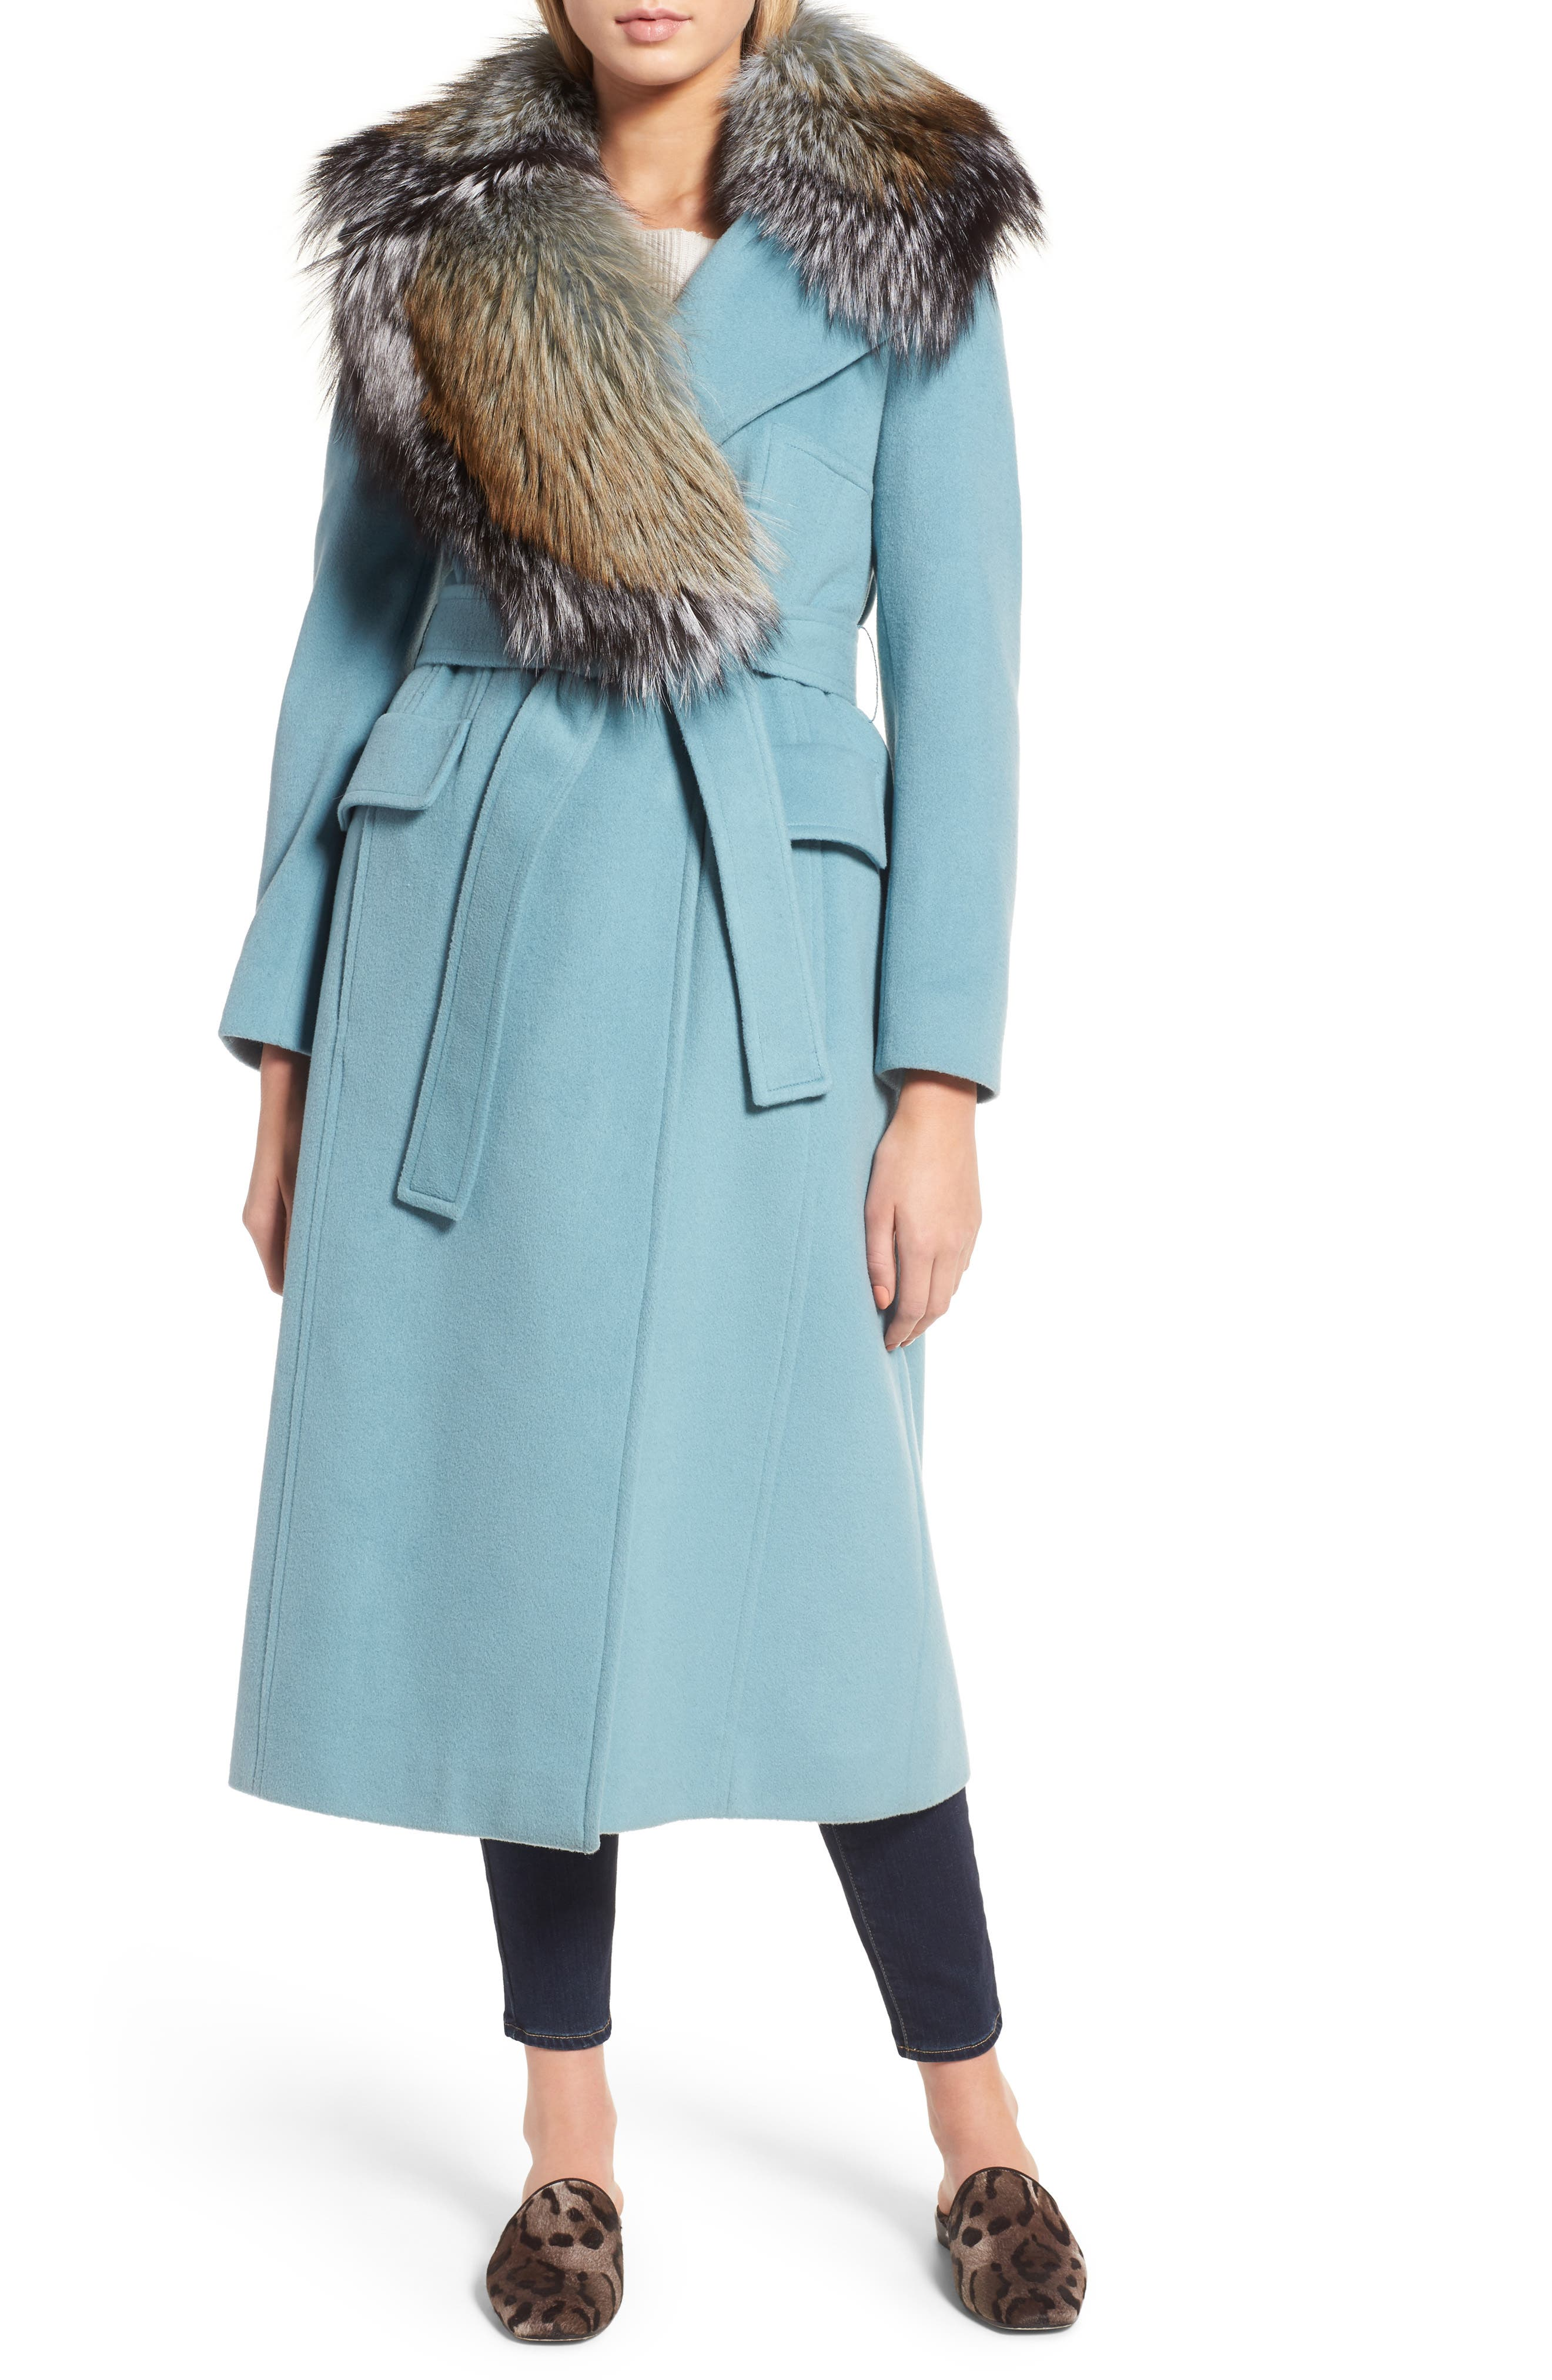 Alternate Image 1 Selected - Diane von Furstenberg Wool Blend Coat with Removable Genuine Fox Fur Collar